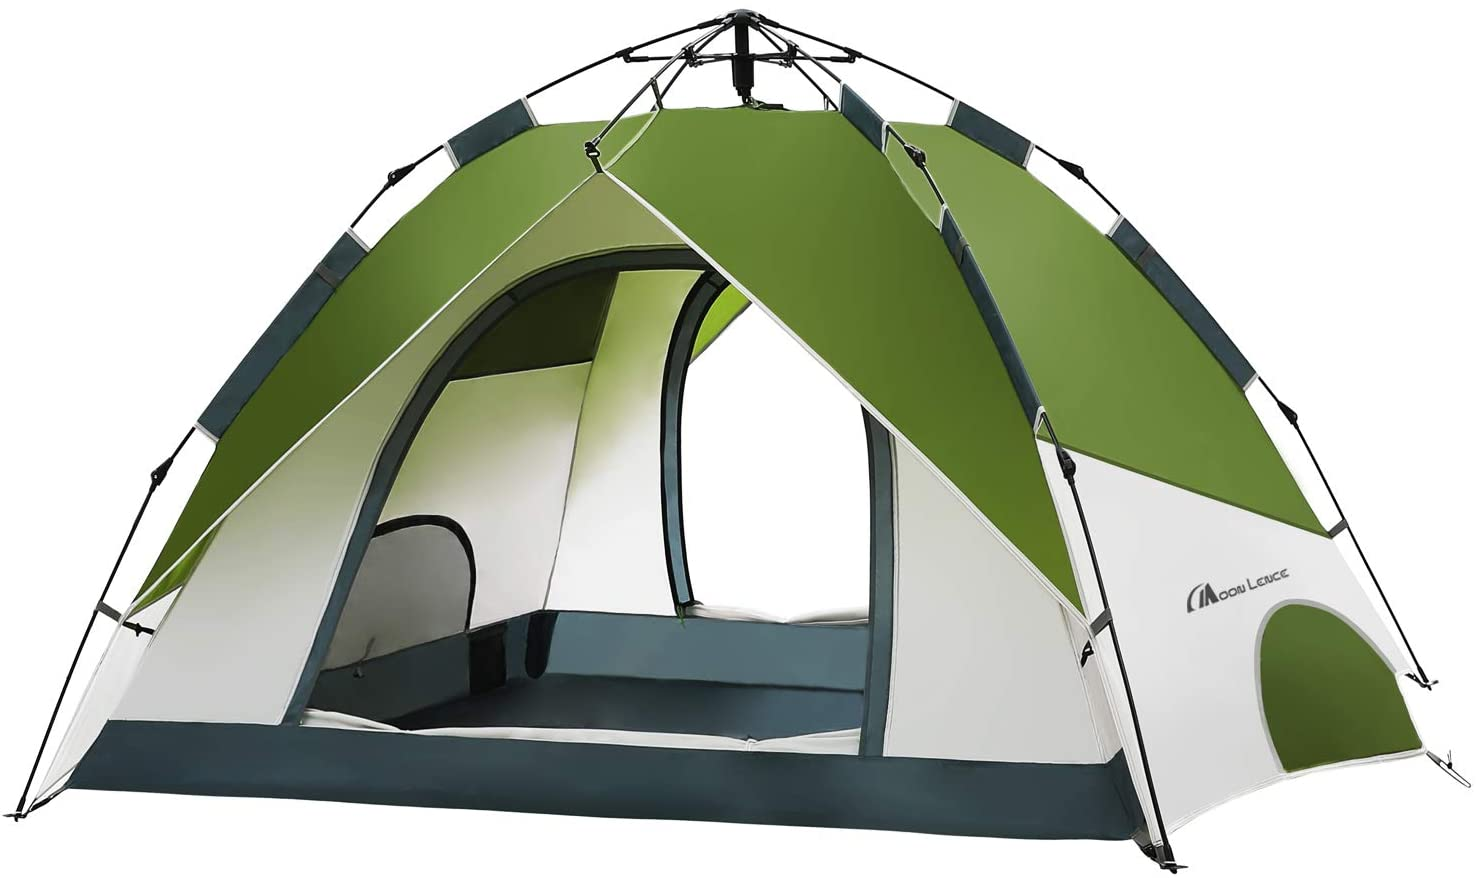 MOON LENCE Pop Up Tent Family Camping Tent